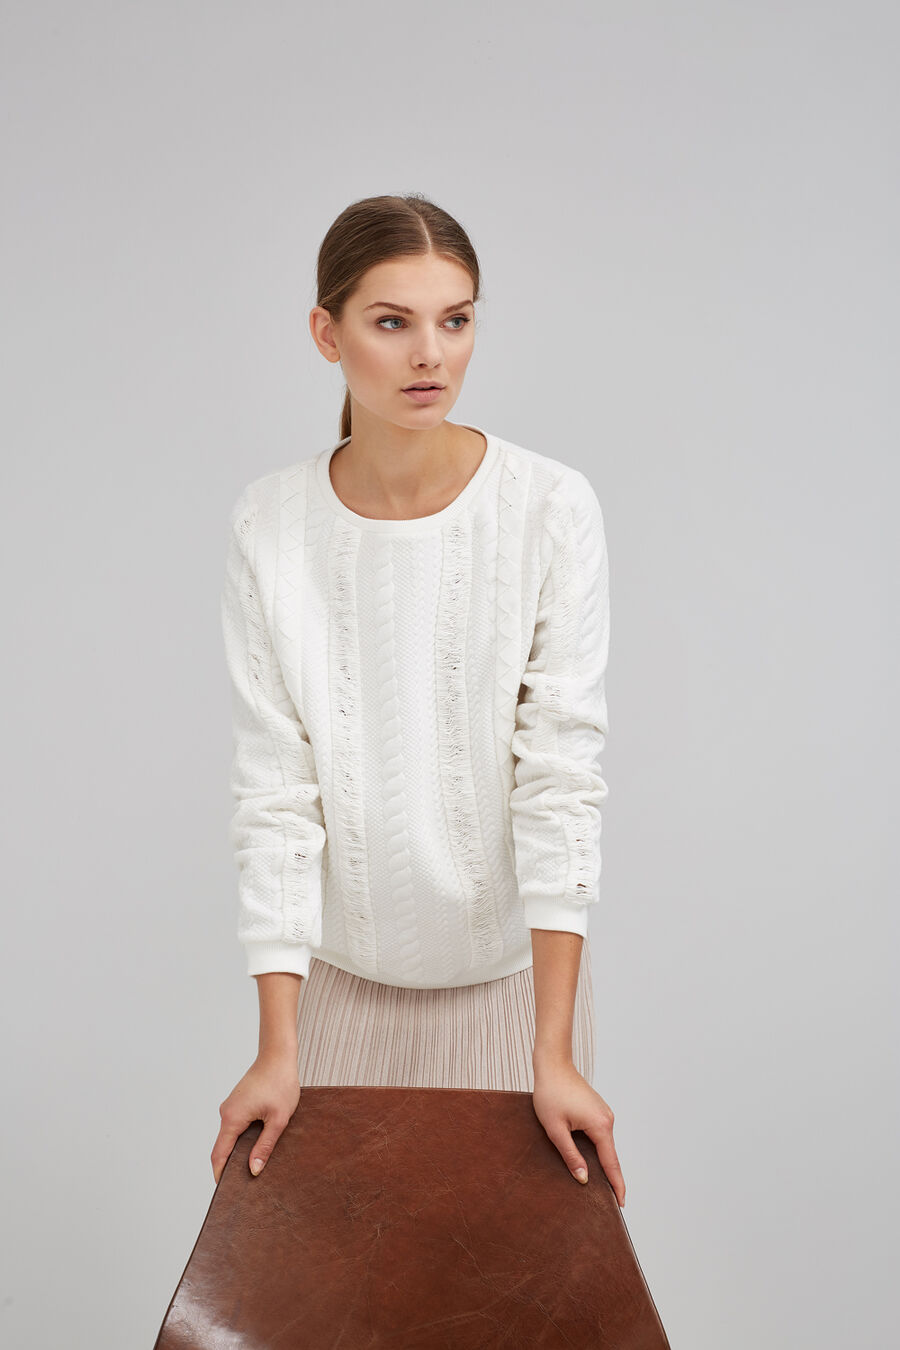 Braided fretwork sweatshirt